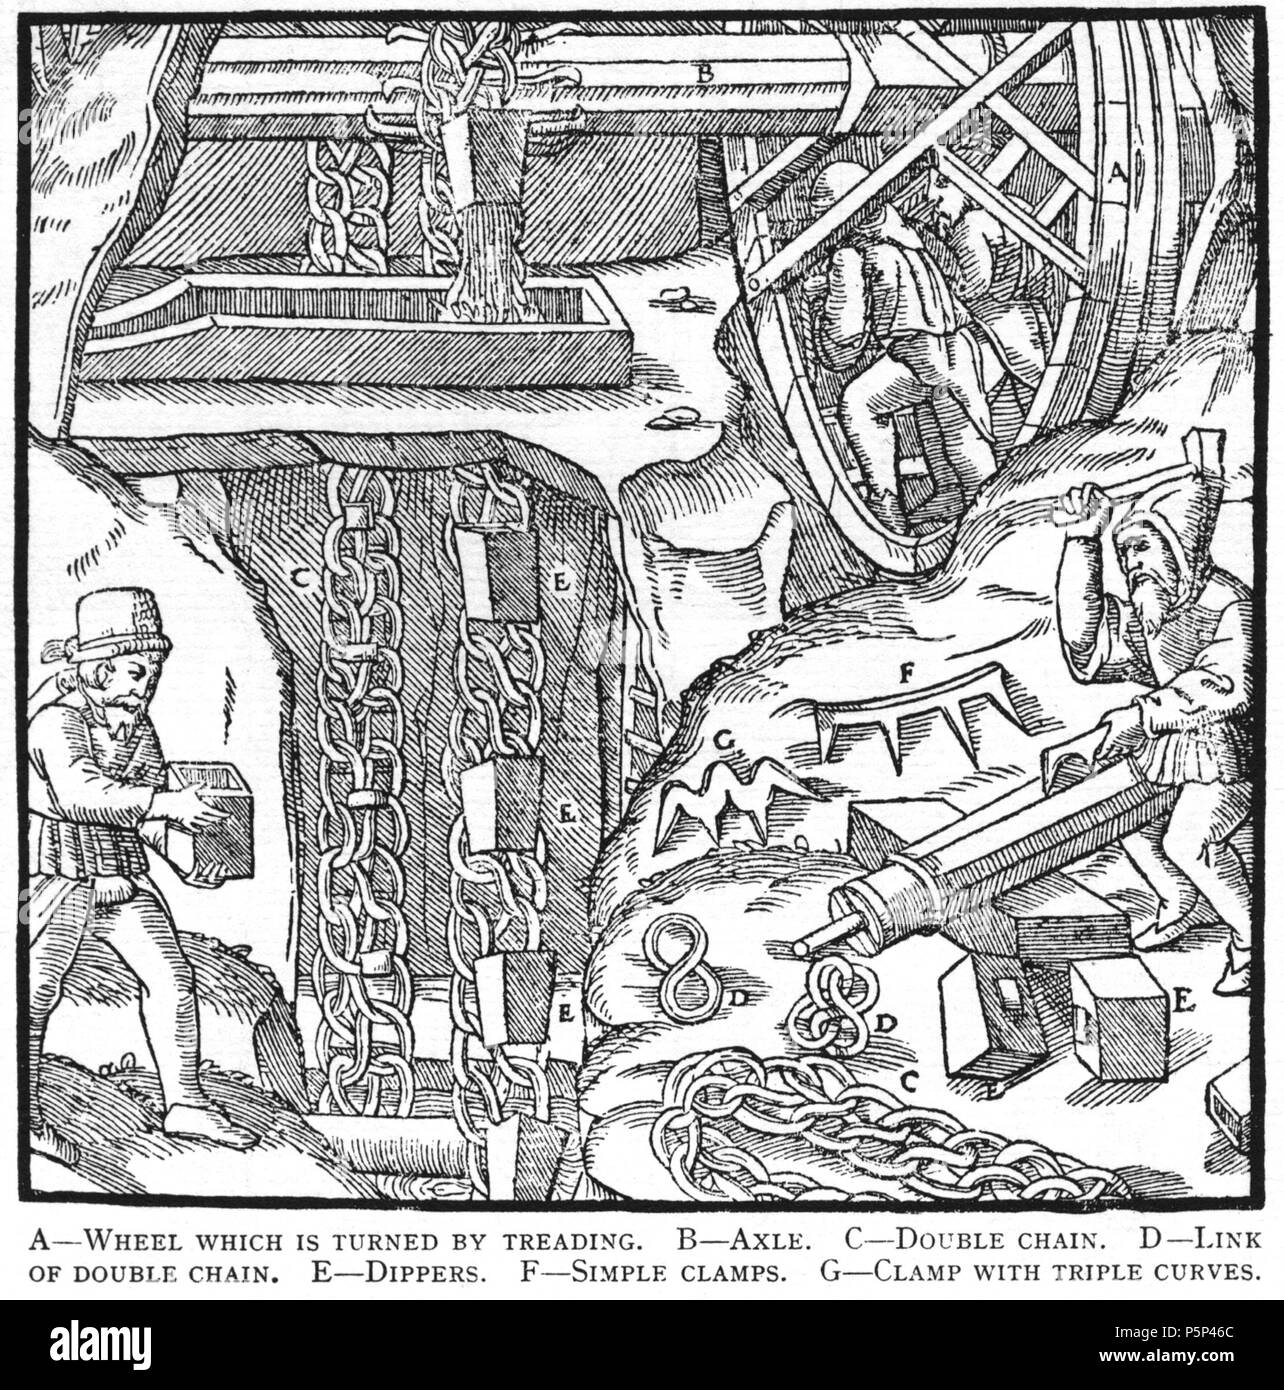 N/A. Woodcut illustration from De re metallica by Georgius Agricola. This is a 300dpi scan from the 1950 Dover edition of the 1913 Hoover translation of the 1556 reference. The Dover edition has slightly smaller size prints than the Hoover (which is a rare book). The woodcuts were recreated for the 1913 printing. Filenames (except for the title page) indicate the chapter (2, 3, 5, etc.) followed by the sequential number of the illustration. 2 May 2005, 07:06:18. TCO (talk) 223 Book6-21 - Stock Image